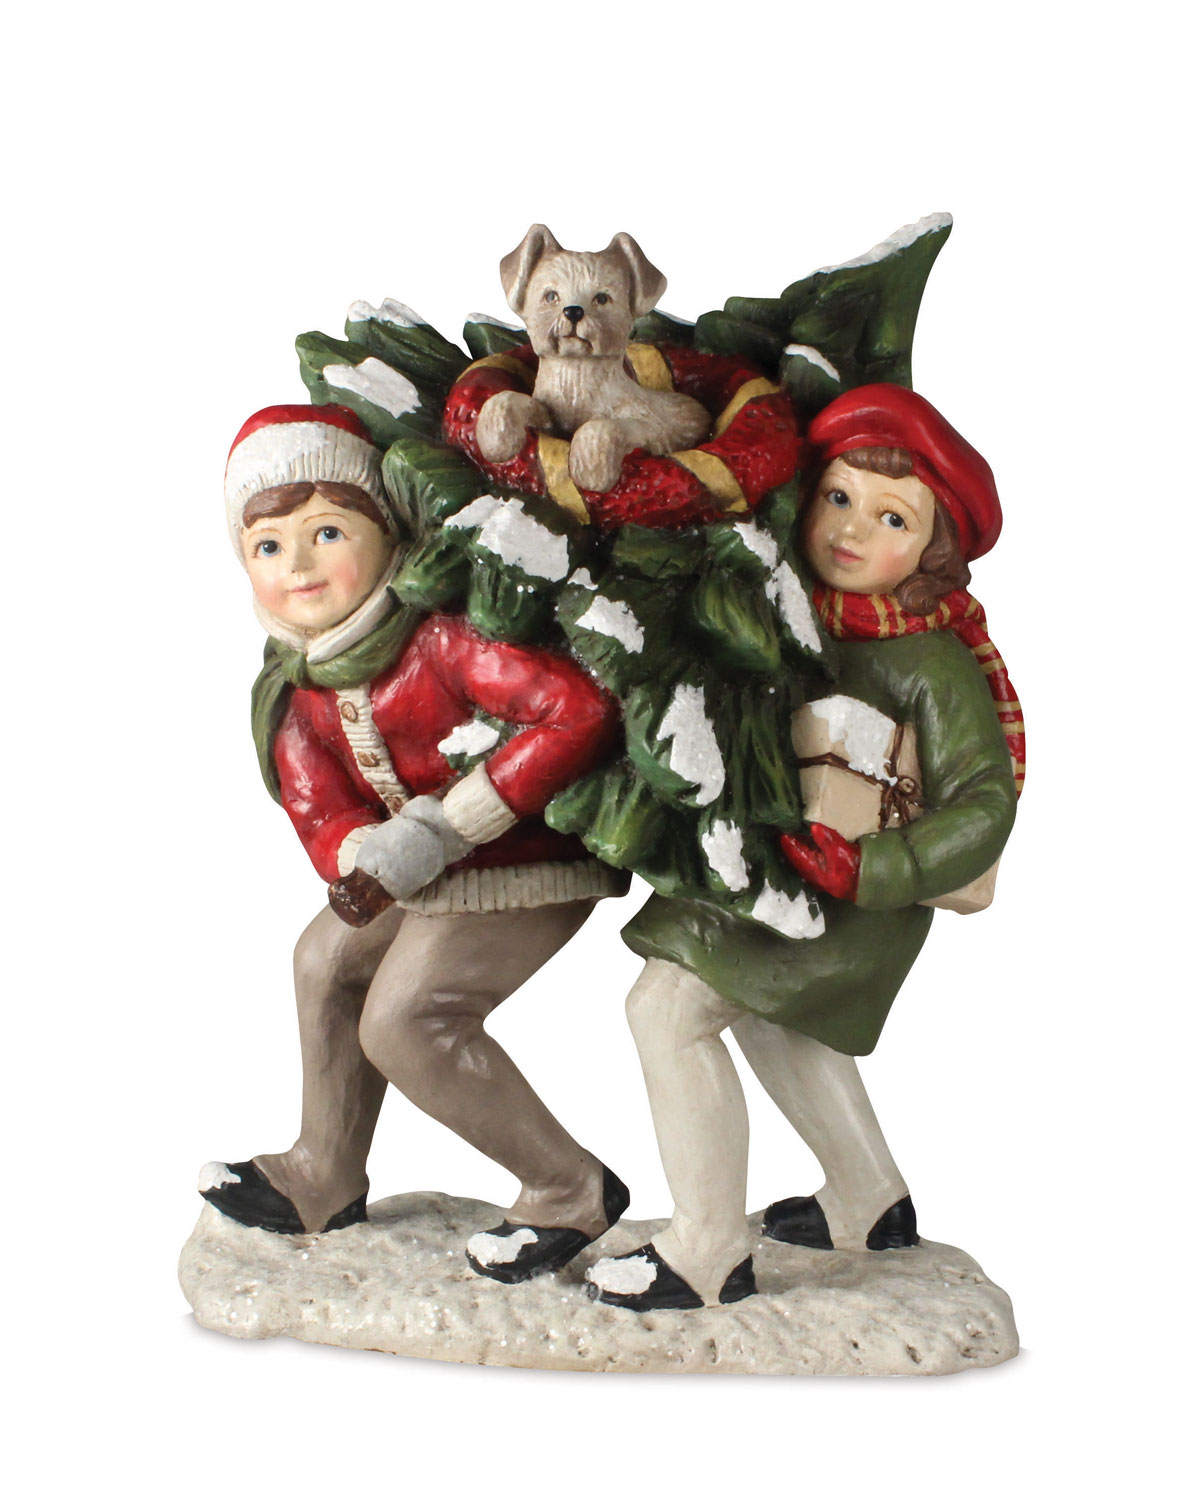 Bringing Home the Tree Christmas Decor Statue